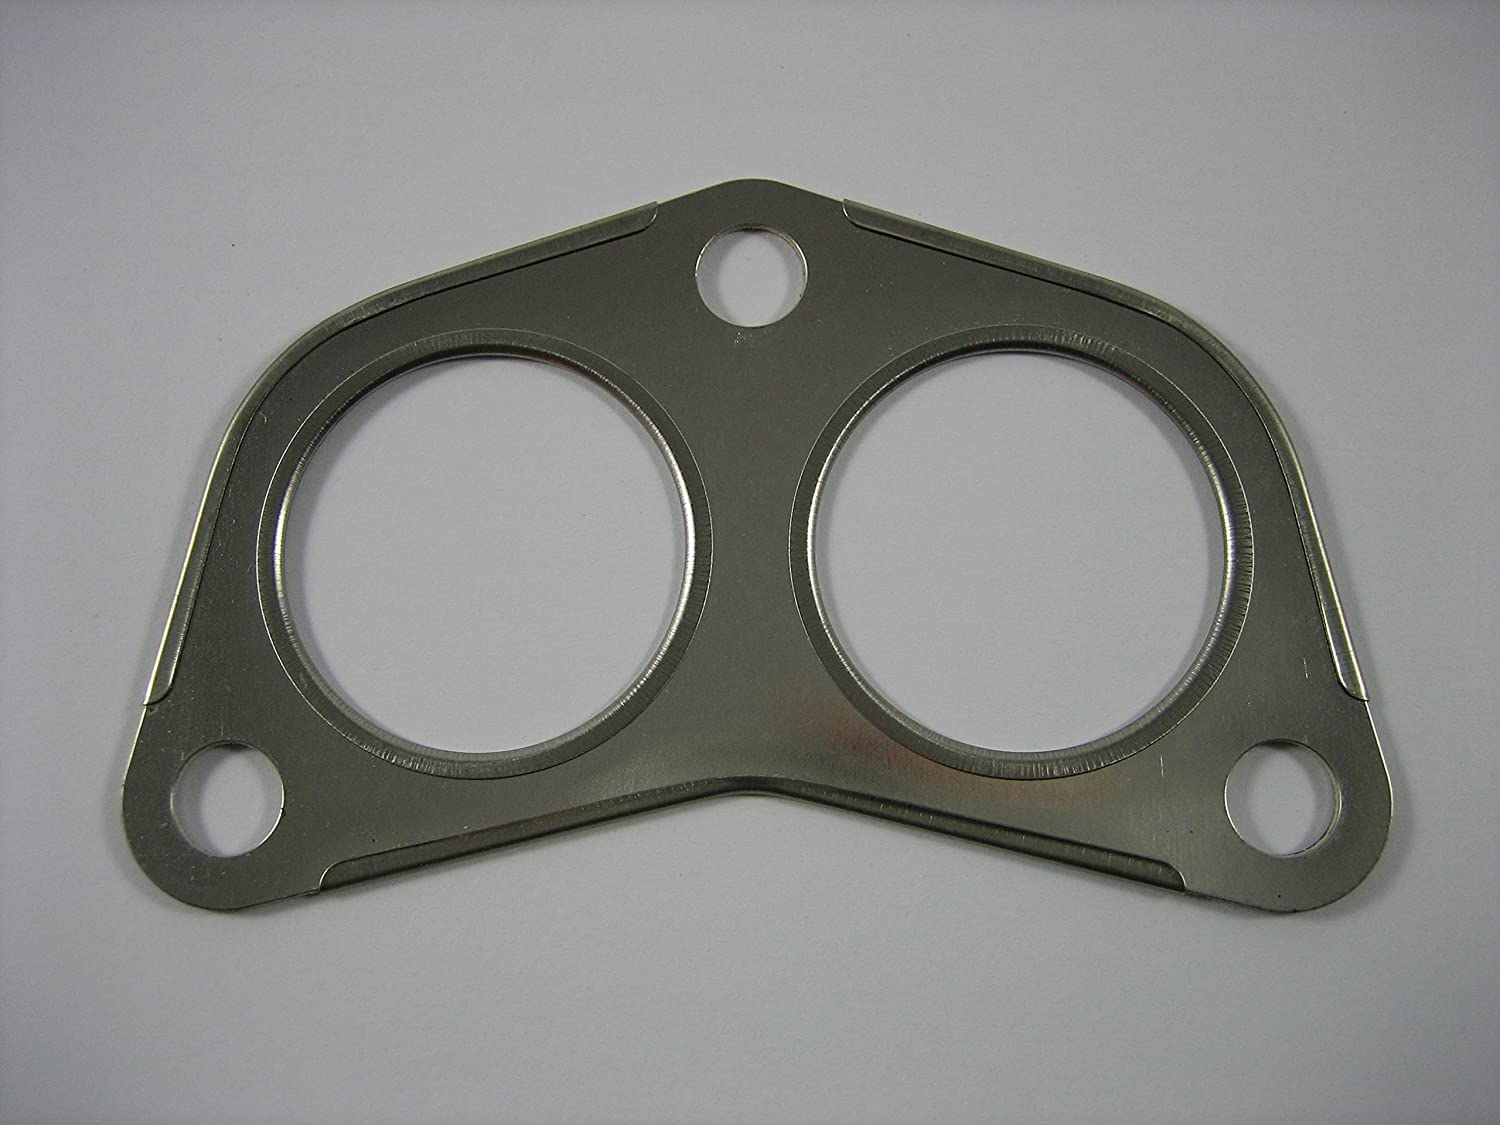 Exhaust Manifold to Pipe Gasket by Allmakes 4x4